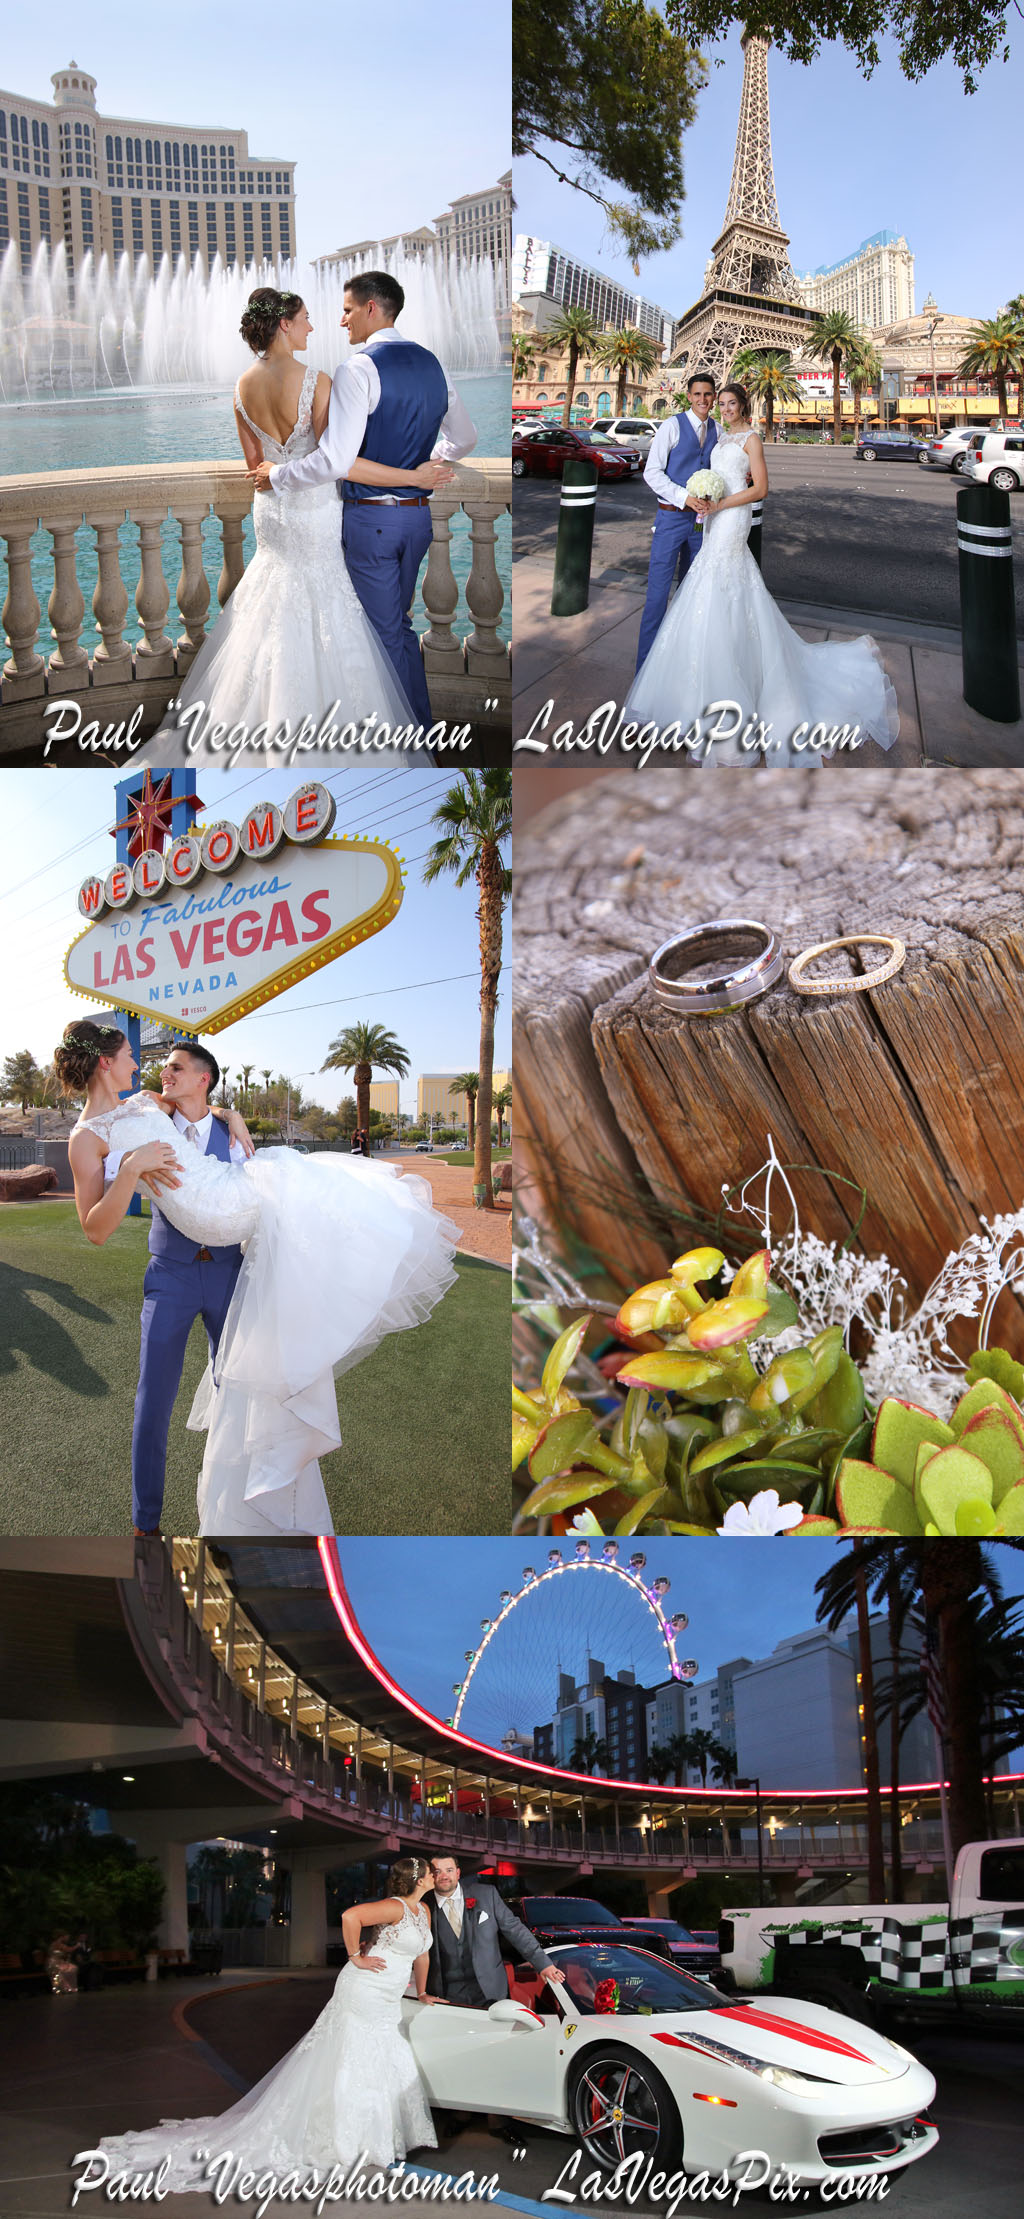 Affordable Wedding Photography.Affordable Las Vegas Wedding Photography Offers Budget Prices On